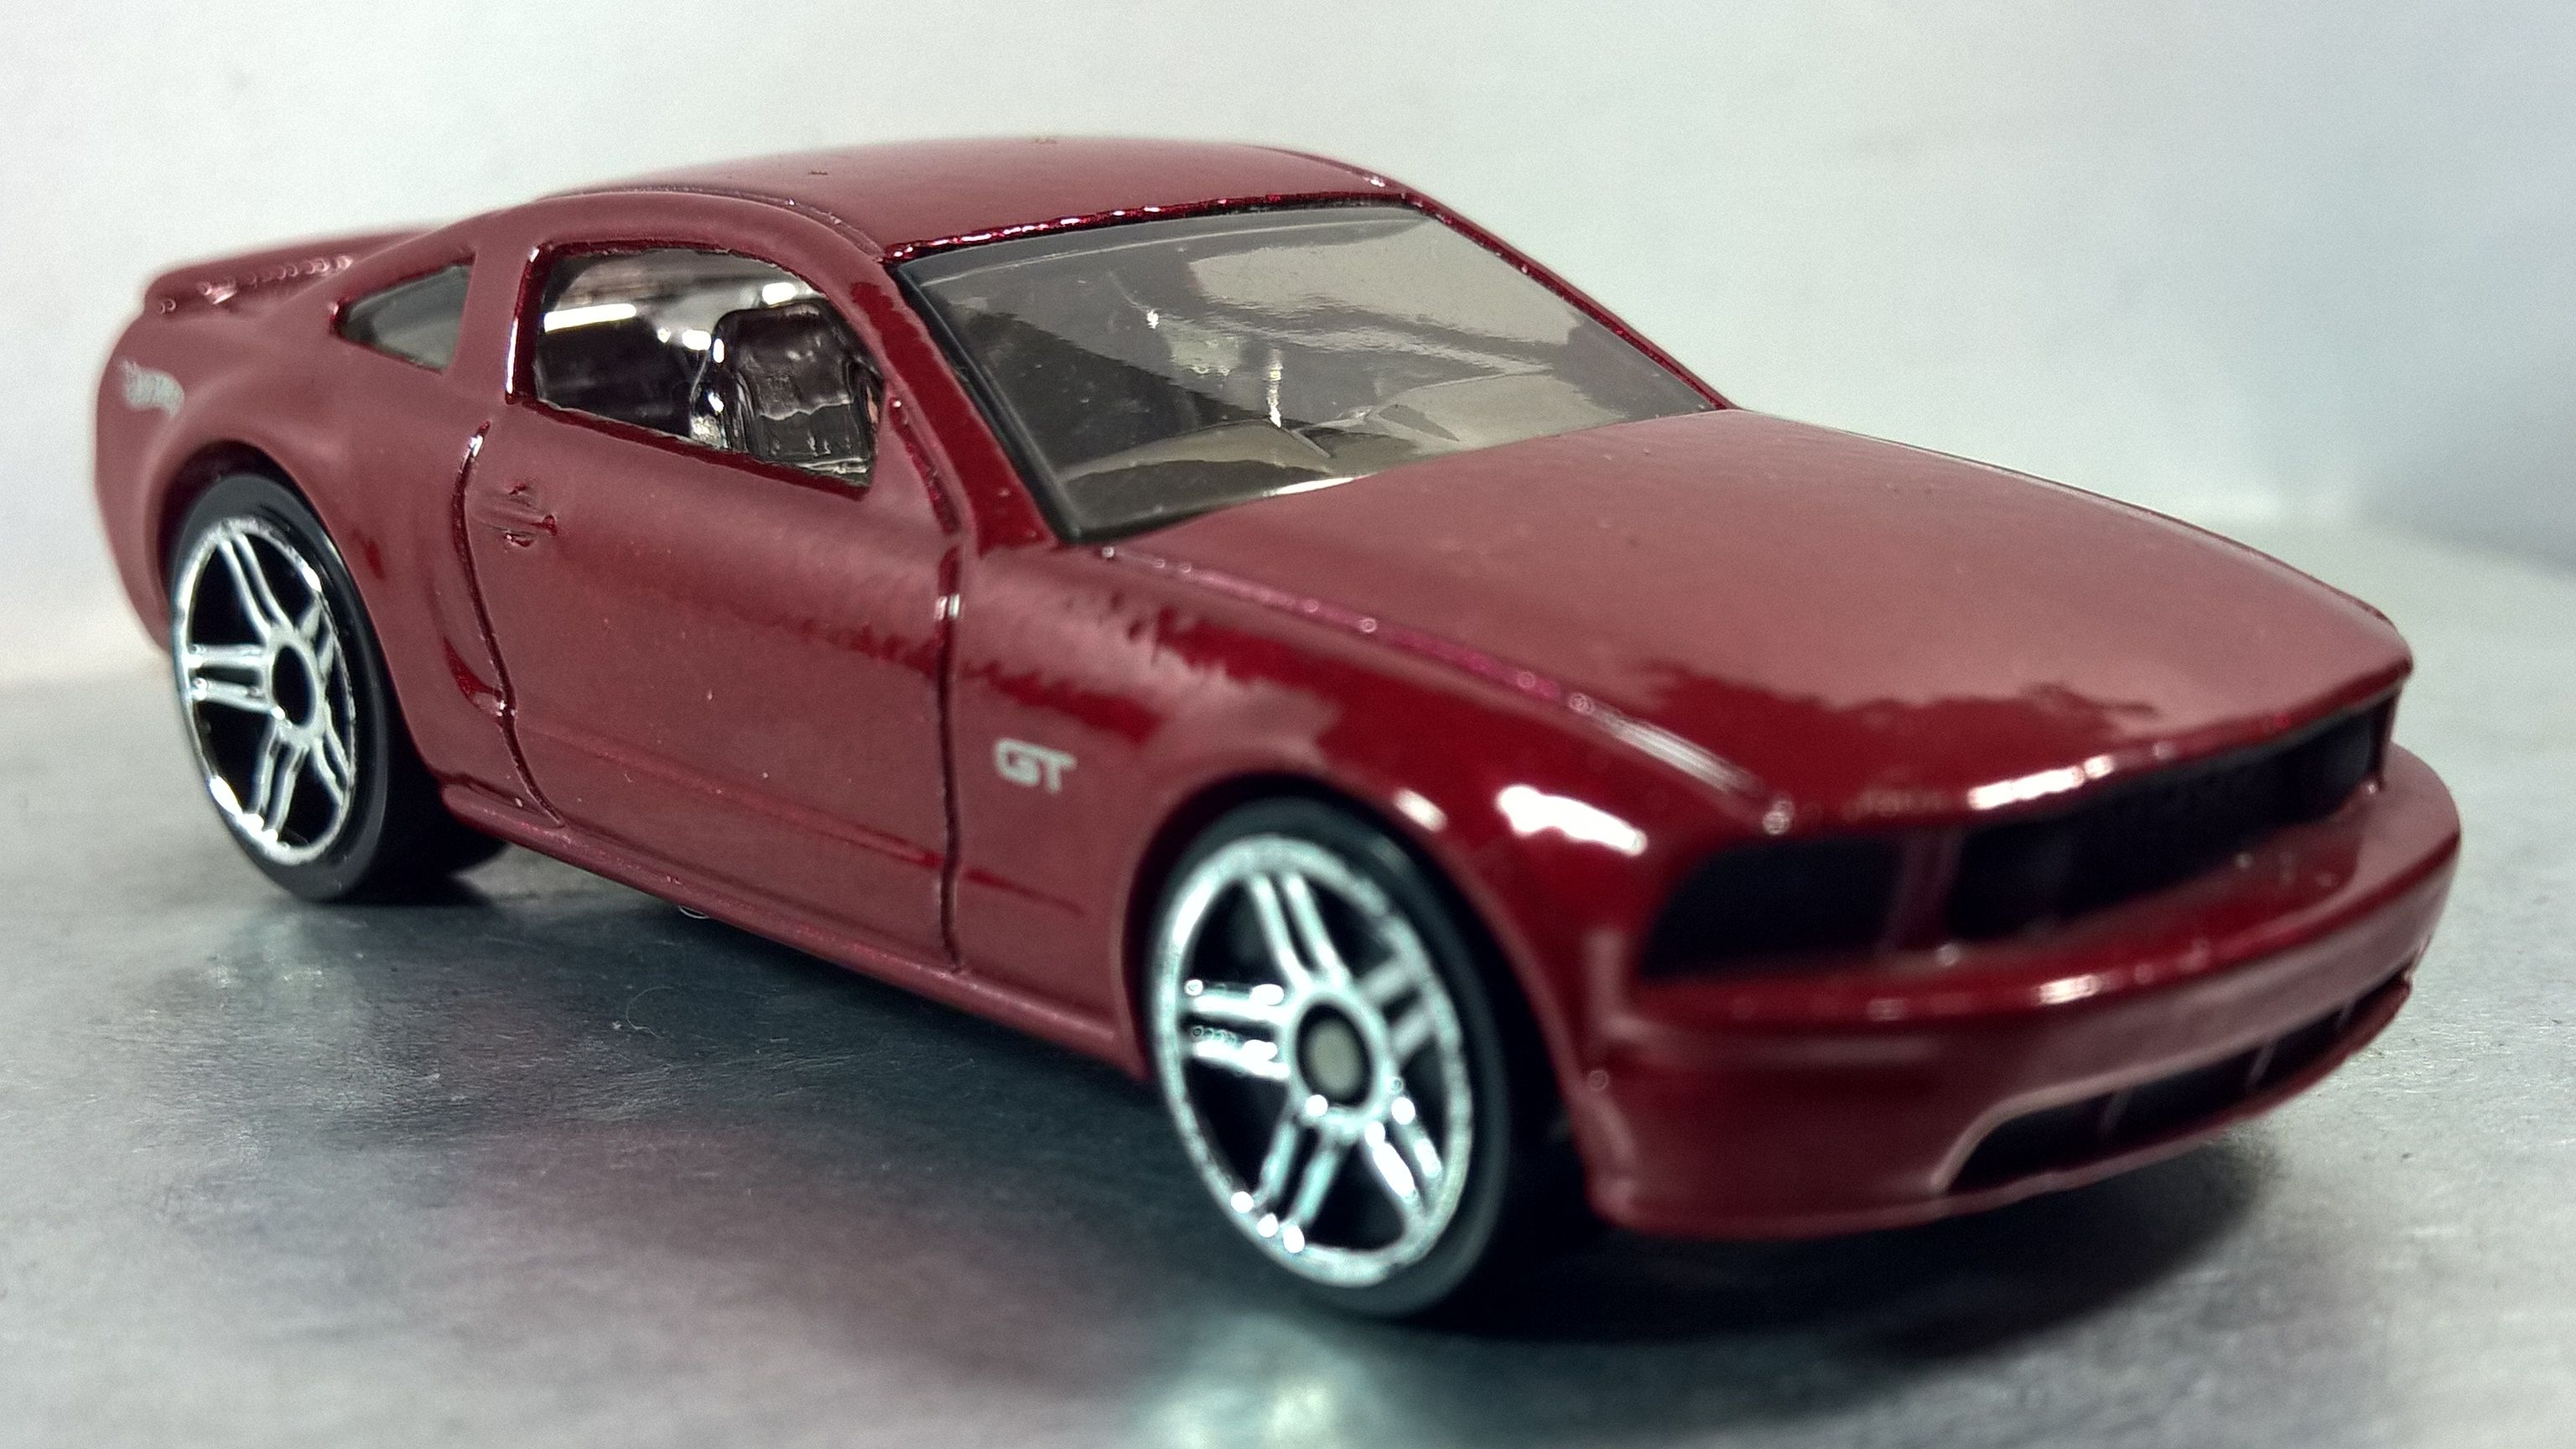 2005 Ford Mustang Gt Realistix 2005 7 Ford Mustang Gt 2005 Ford Mustang Hot Wheels